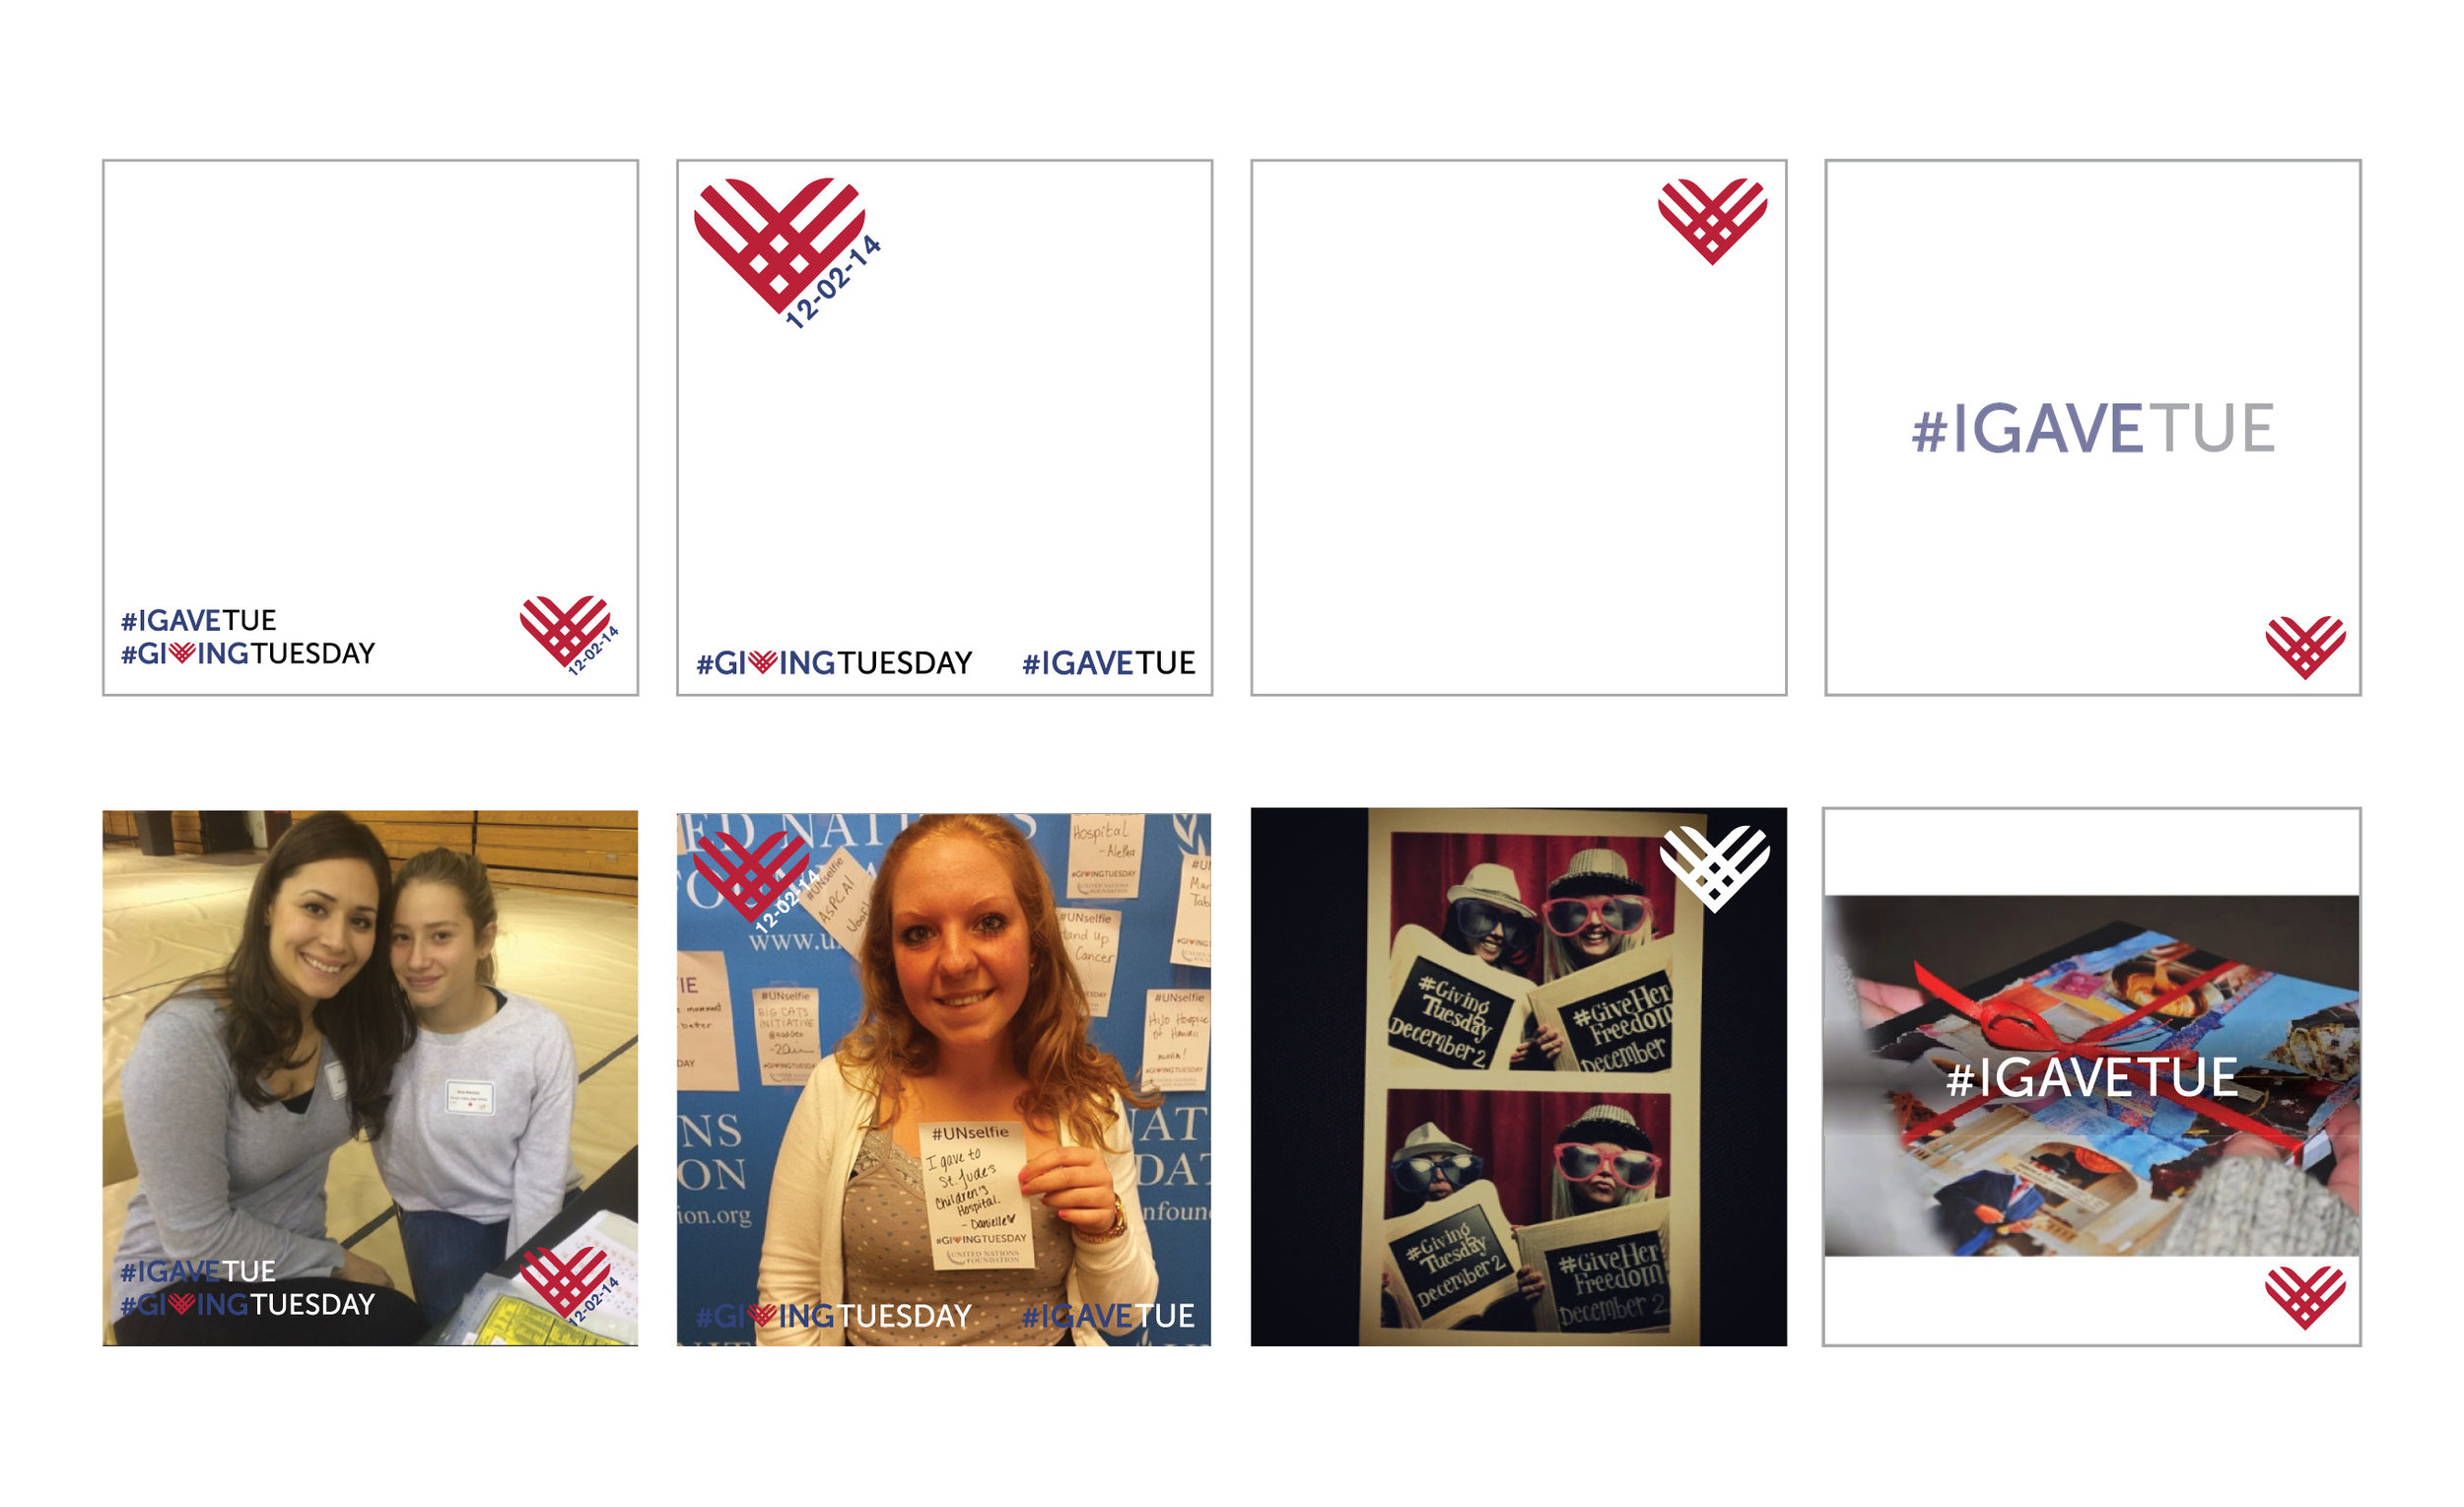 Giving tuesday templates to share on social media with photos.